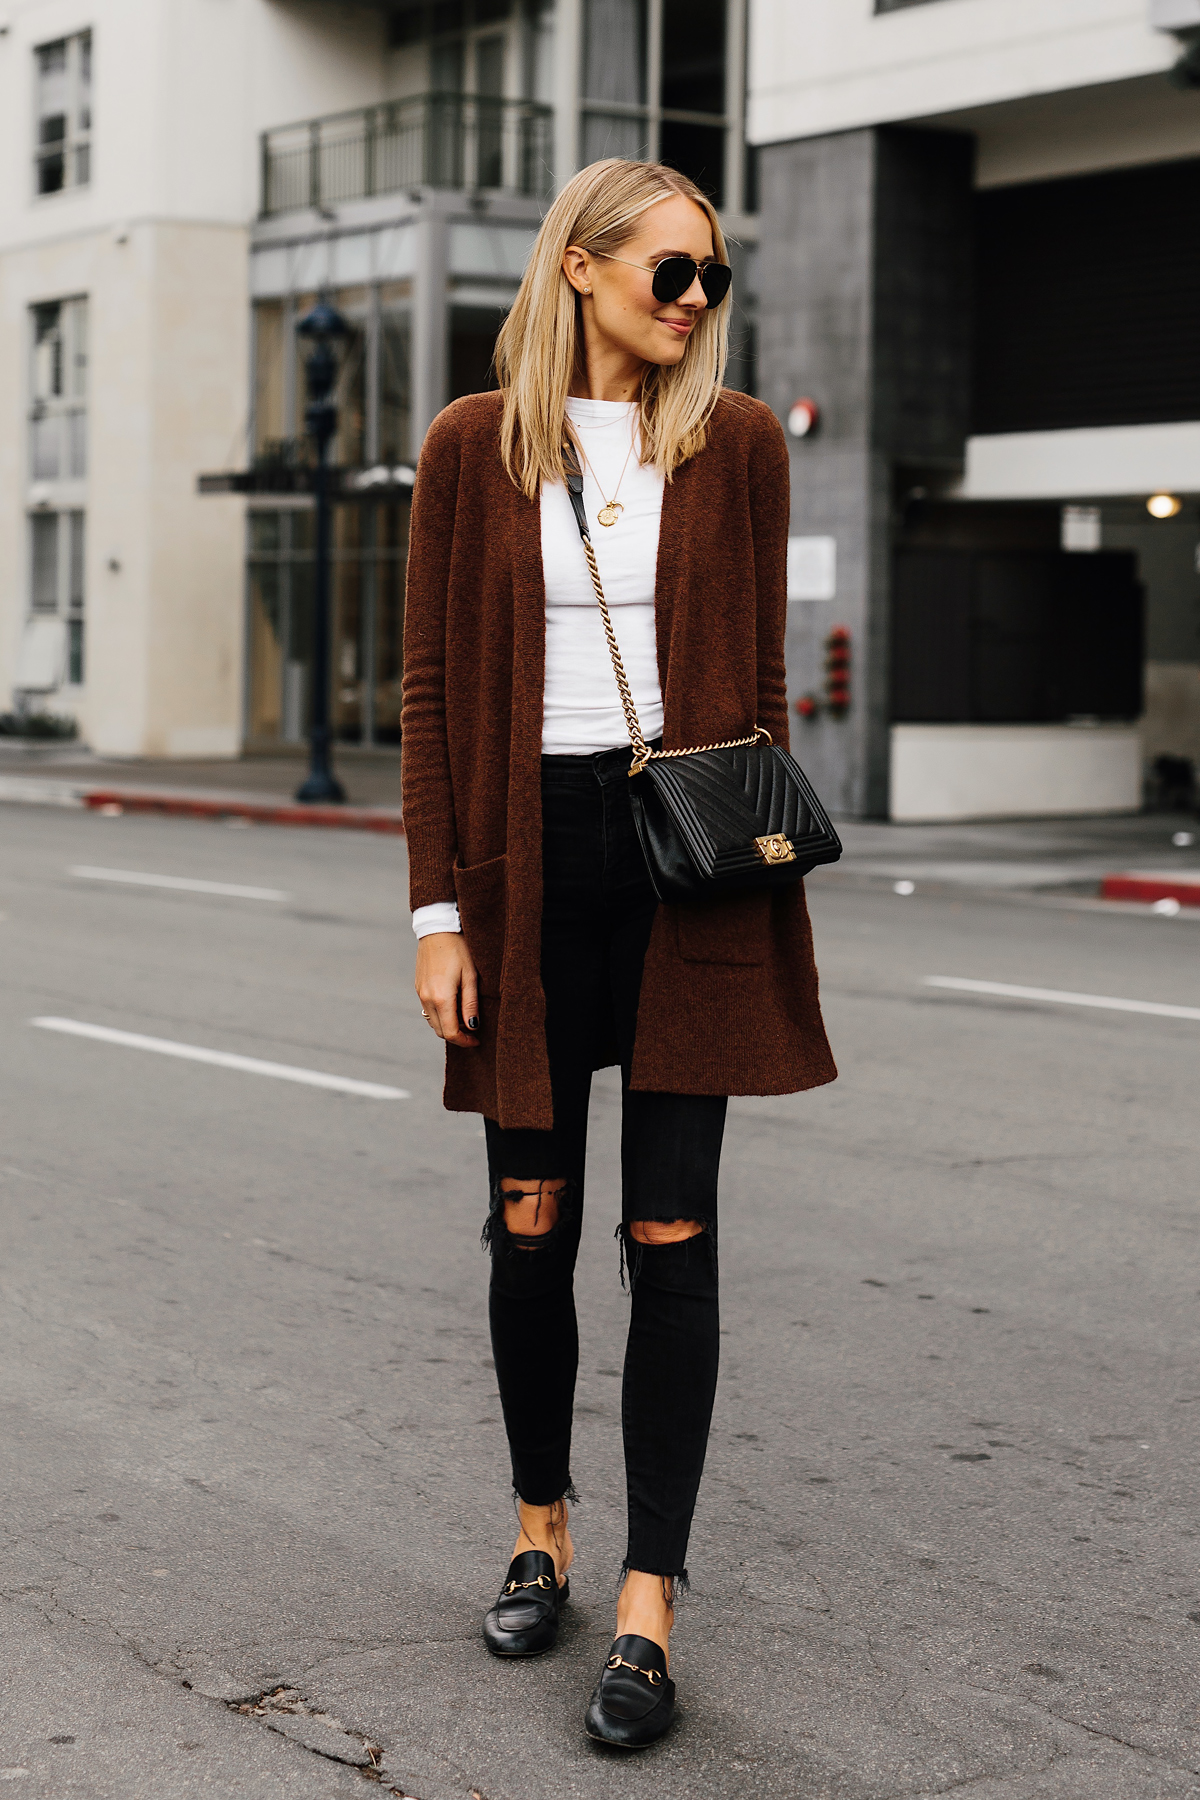 Blonde Woman Wearing Madewell Brown Long Cardigan White Top Madewell Black Ripped Skinny Jeans Gucci Black Princetown Loafer Mules Chanel Black Boy Bag Fashion Jackson San Diego Fashion Blogger Street Style